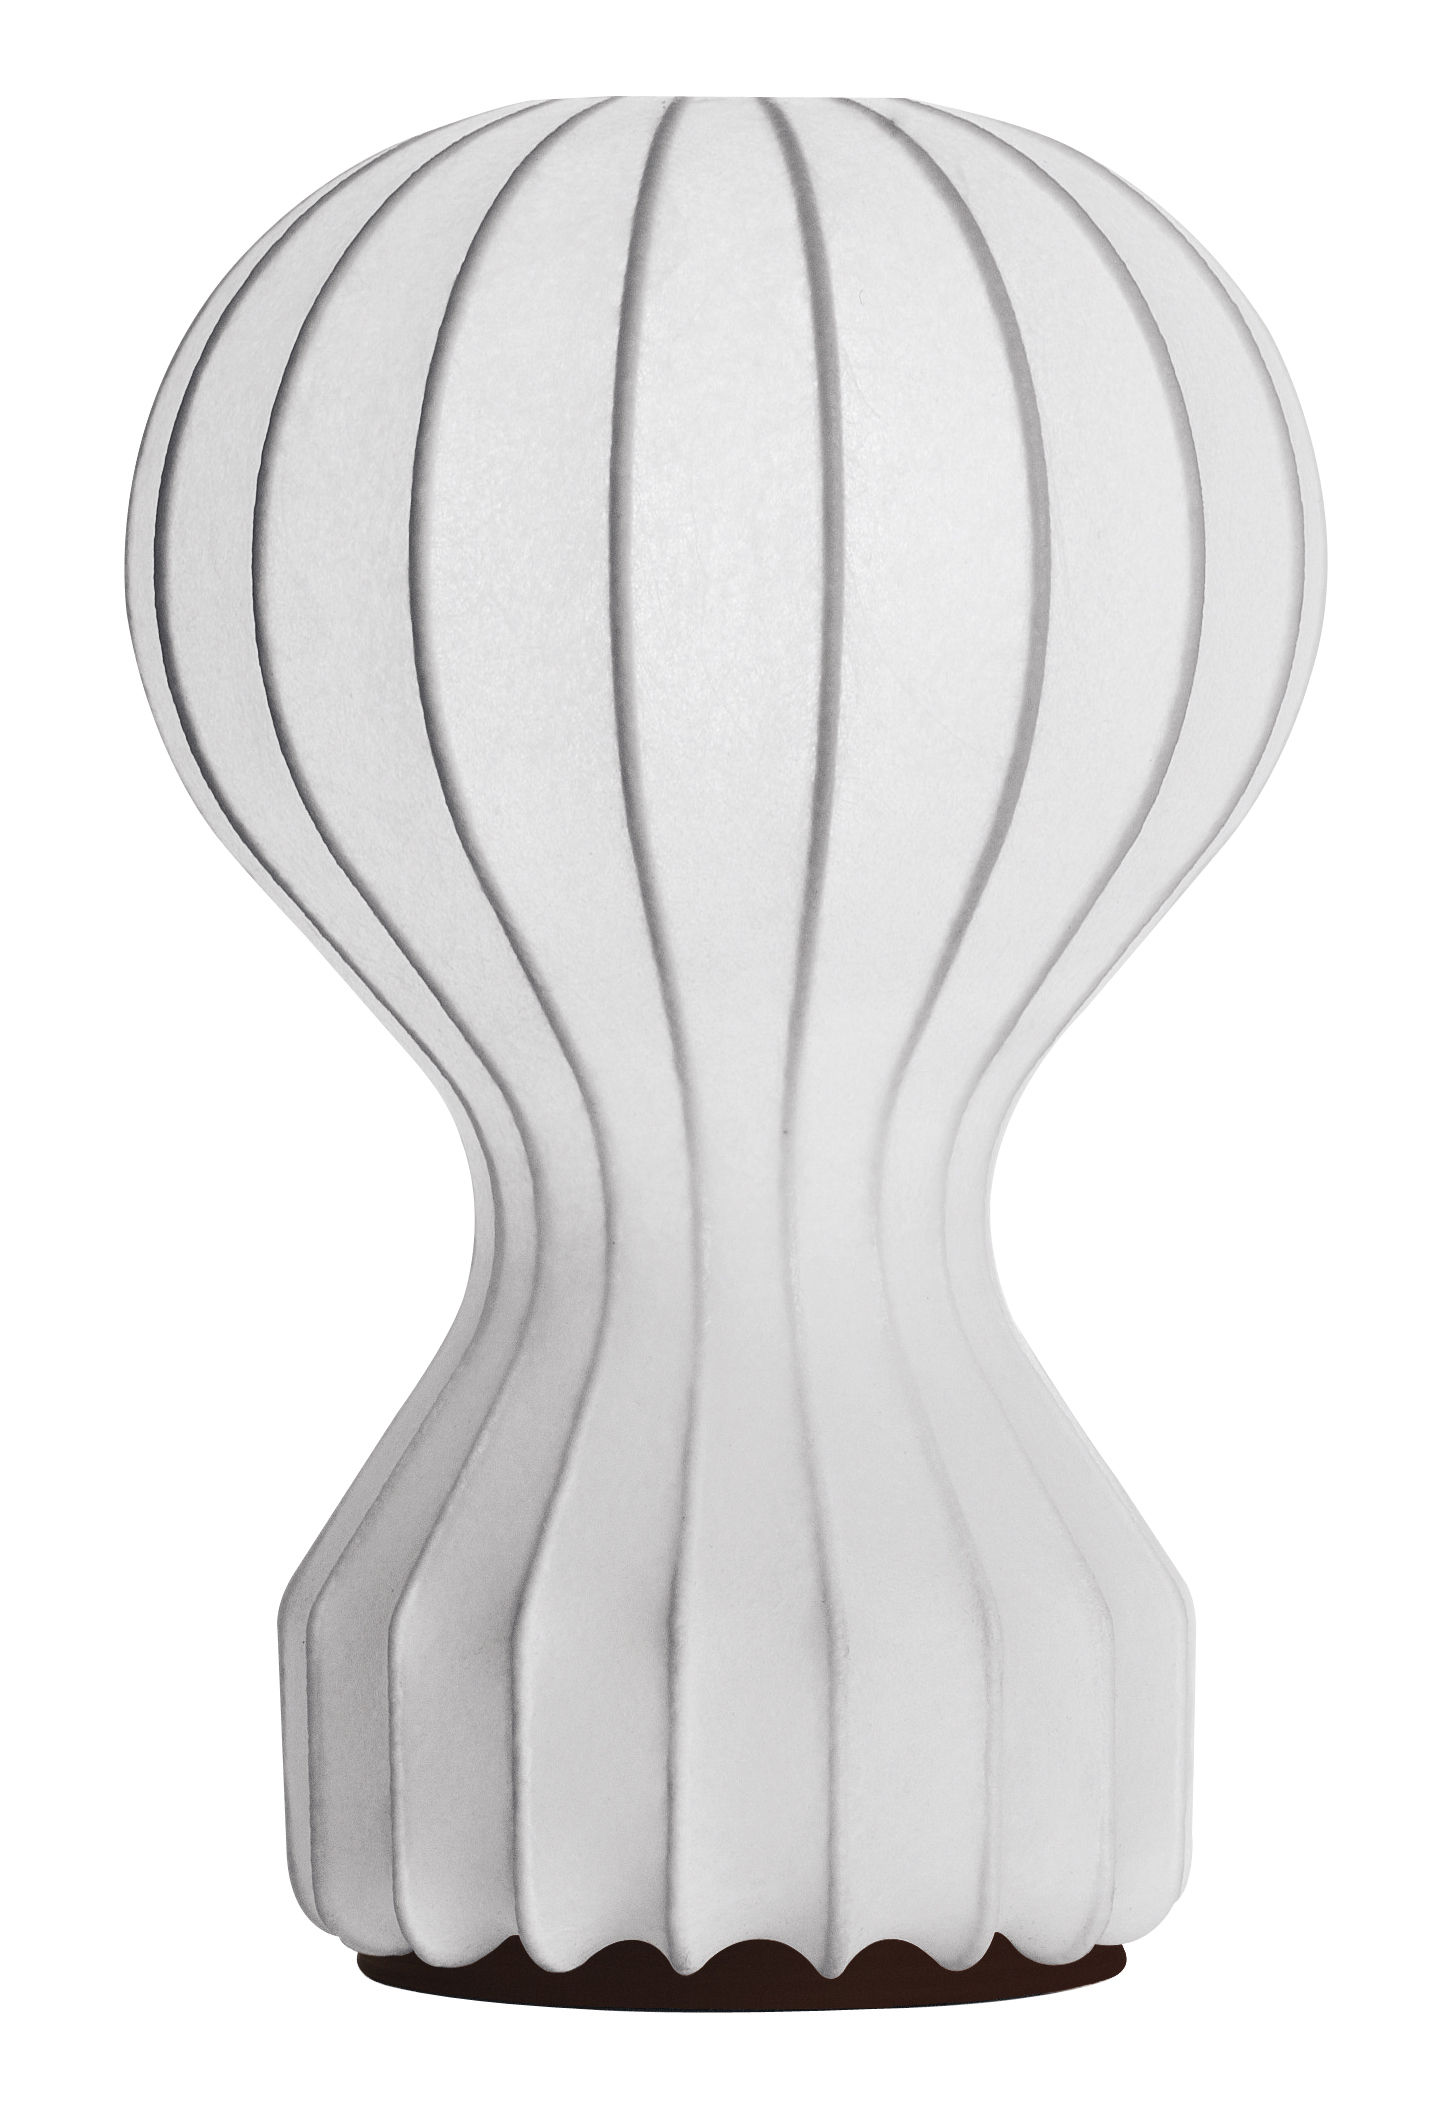 Lighting - Table Lamps - Gatto Piccolo Table lamp by Flos - Cocoon - Resin, Steel